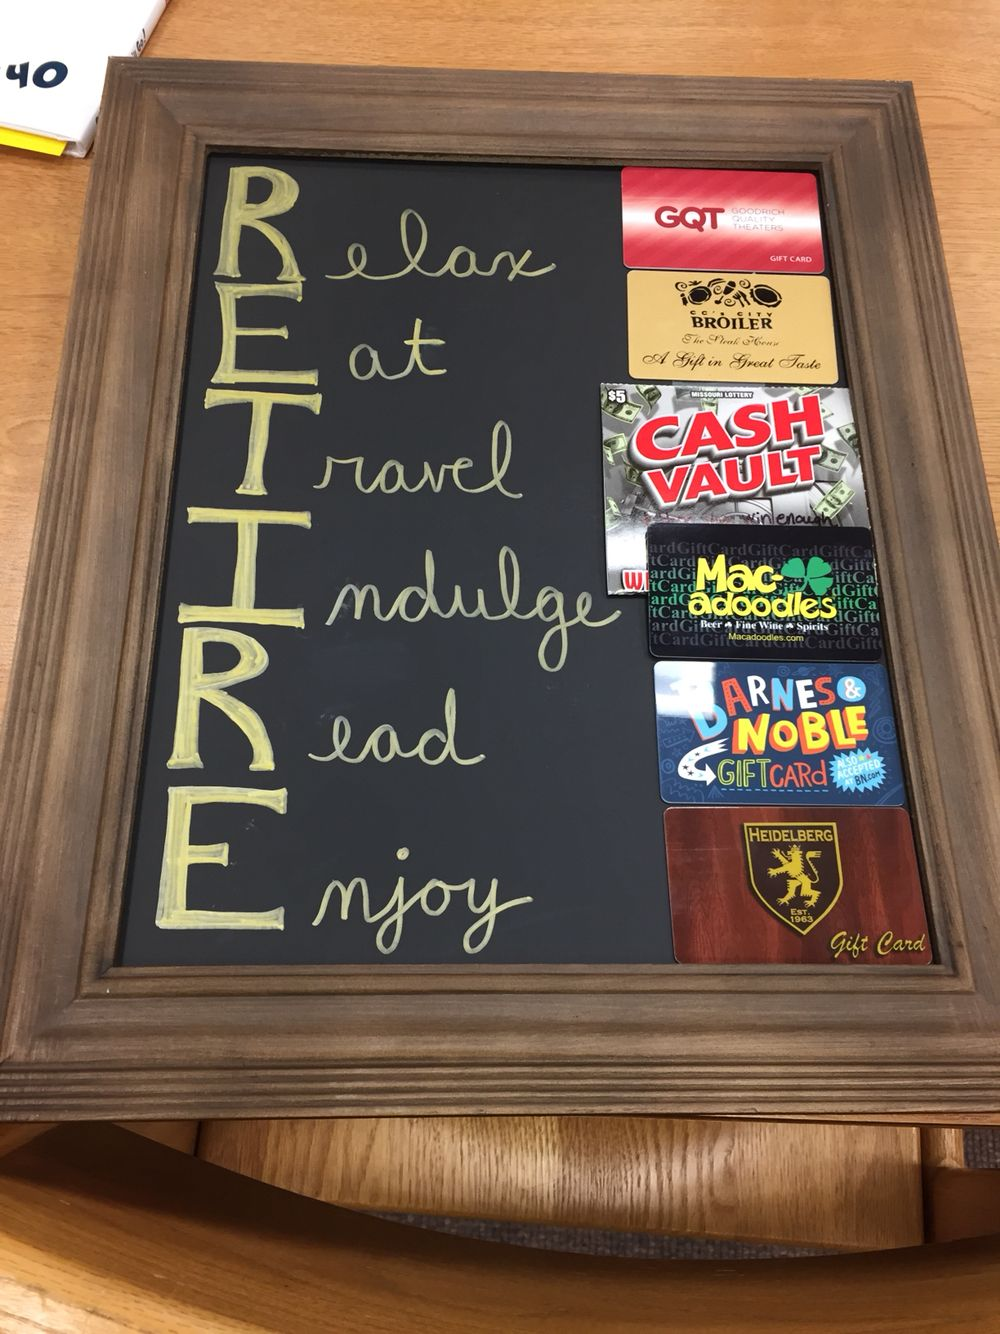 Farewell ideas for coworkers - Craft